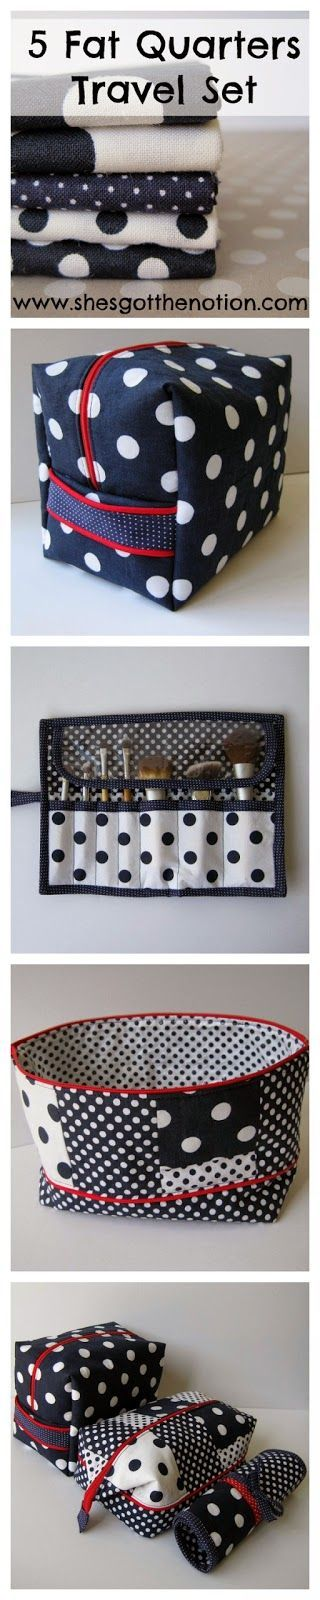 5 Fat Quarter Travel Set: Sewing tutorials to make a toiletry bag, a makeup brush roll, and a makeup zipper pouch from only 5 fat quarters.   She's Got the Notion